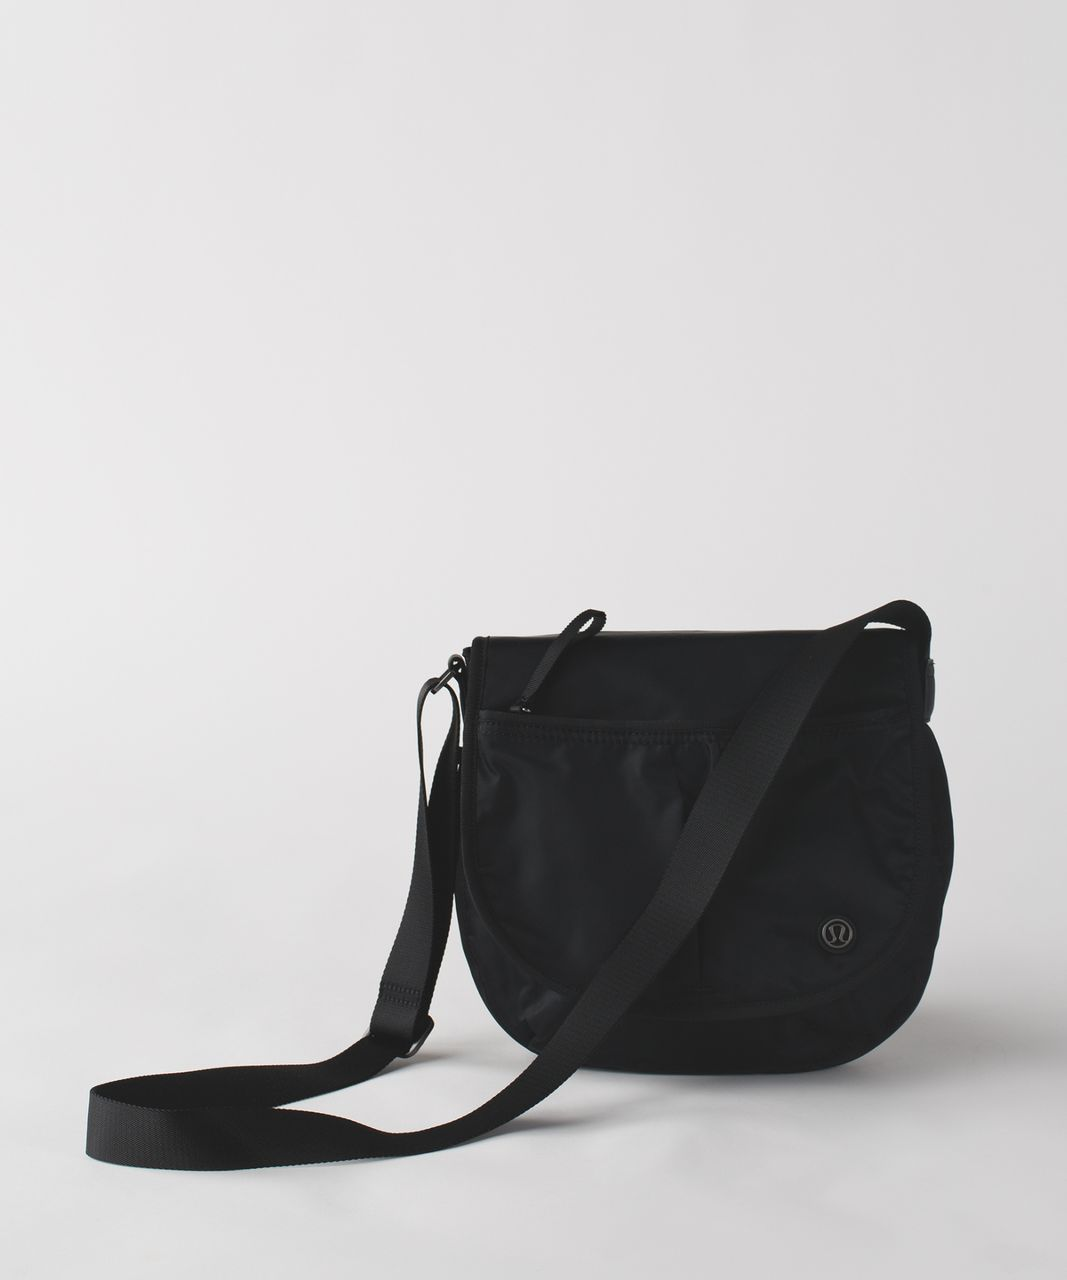 6d66fe7b462 Lululemon The Essentials Bag - Black - lulu fanatics